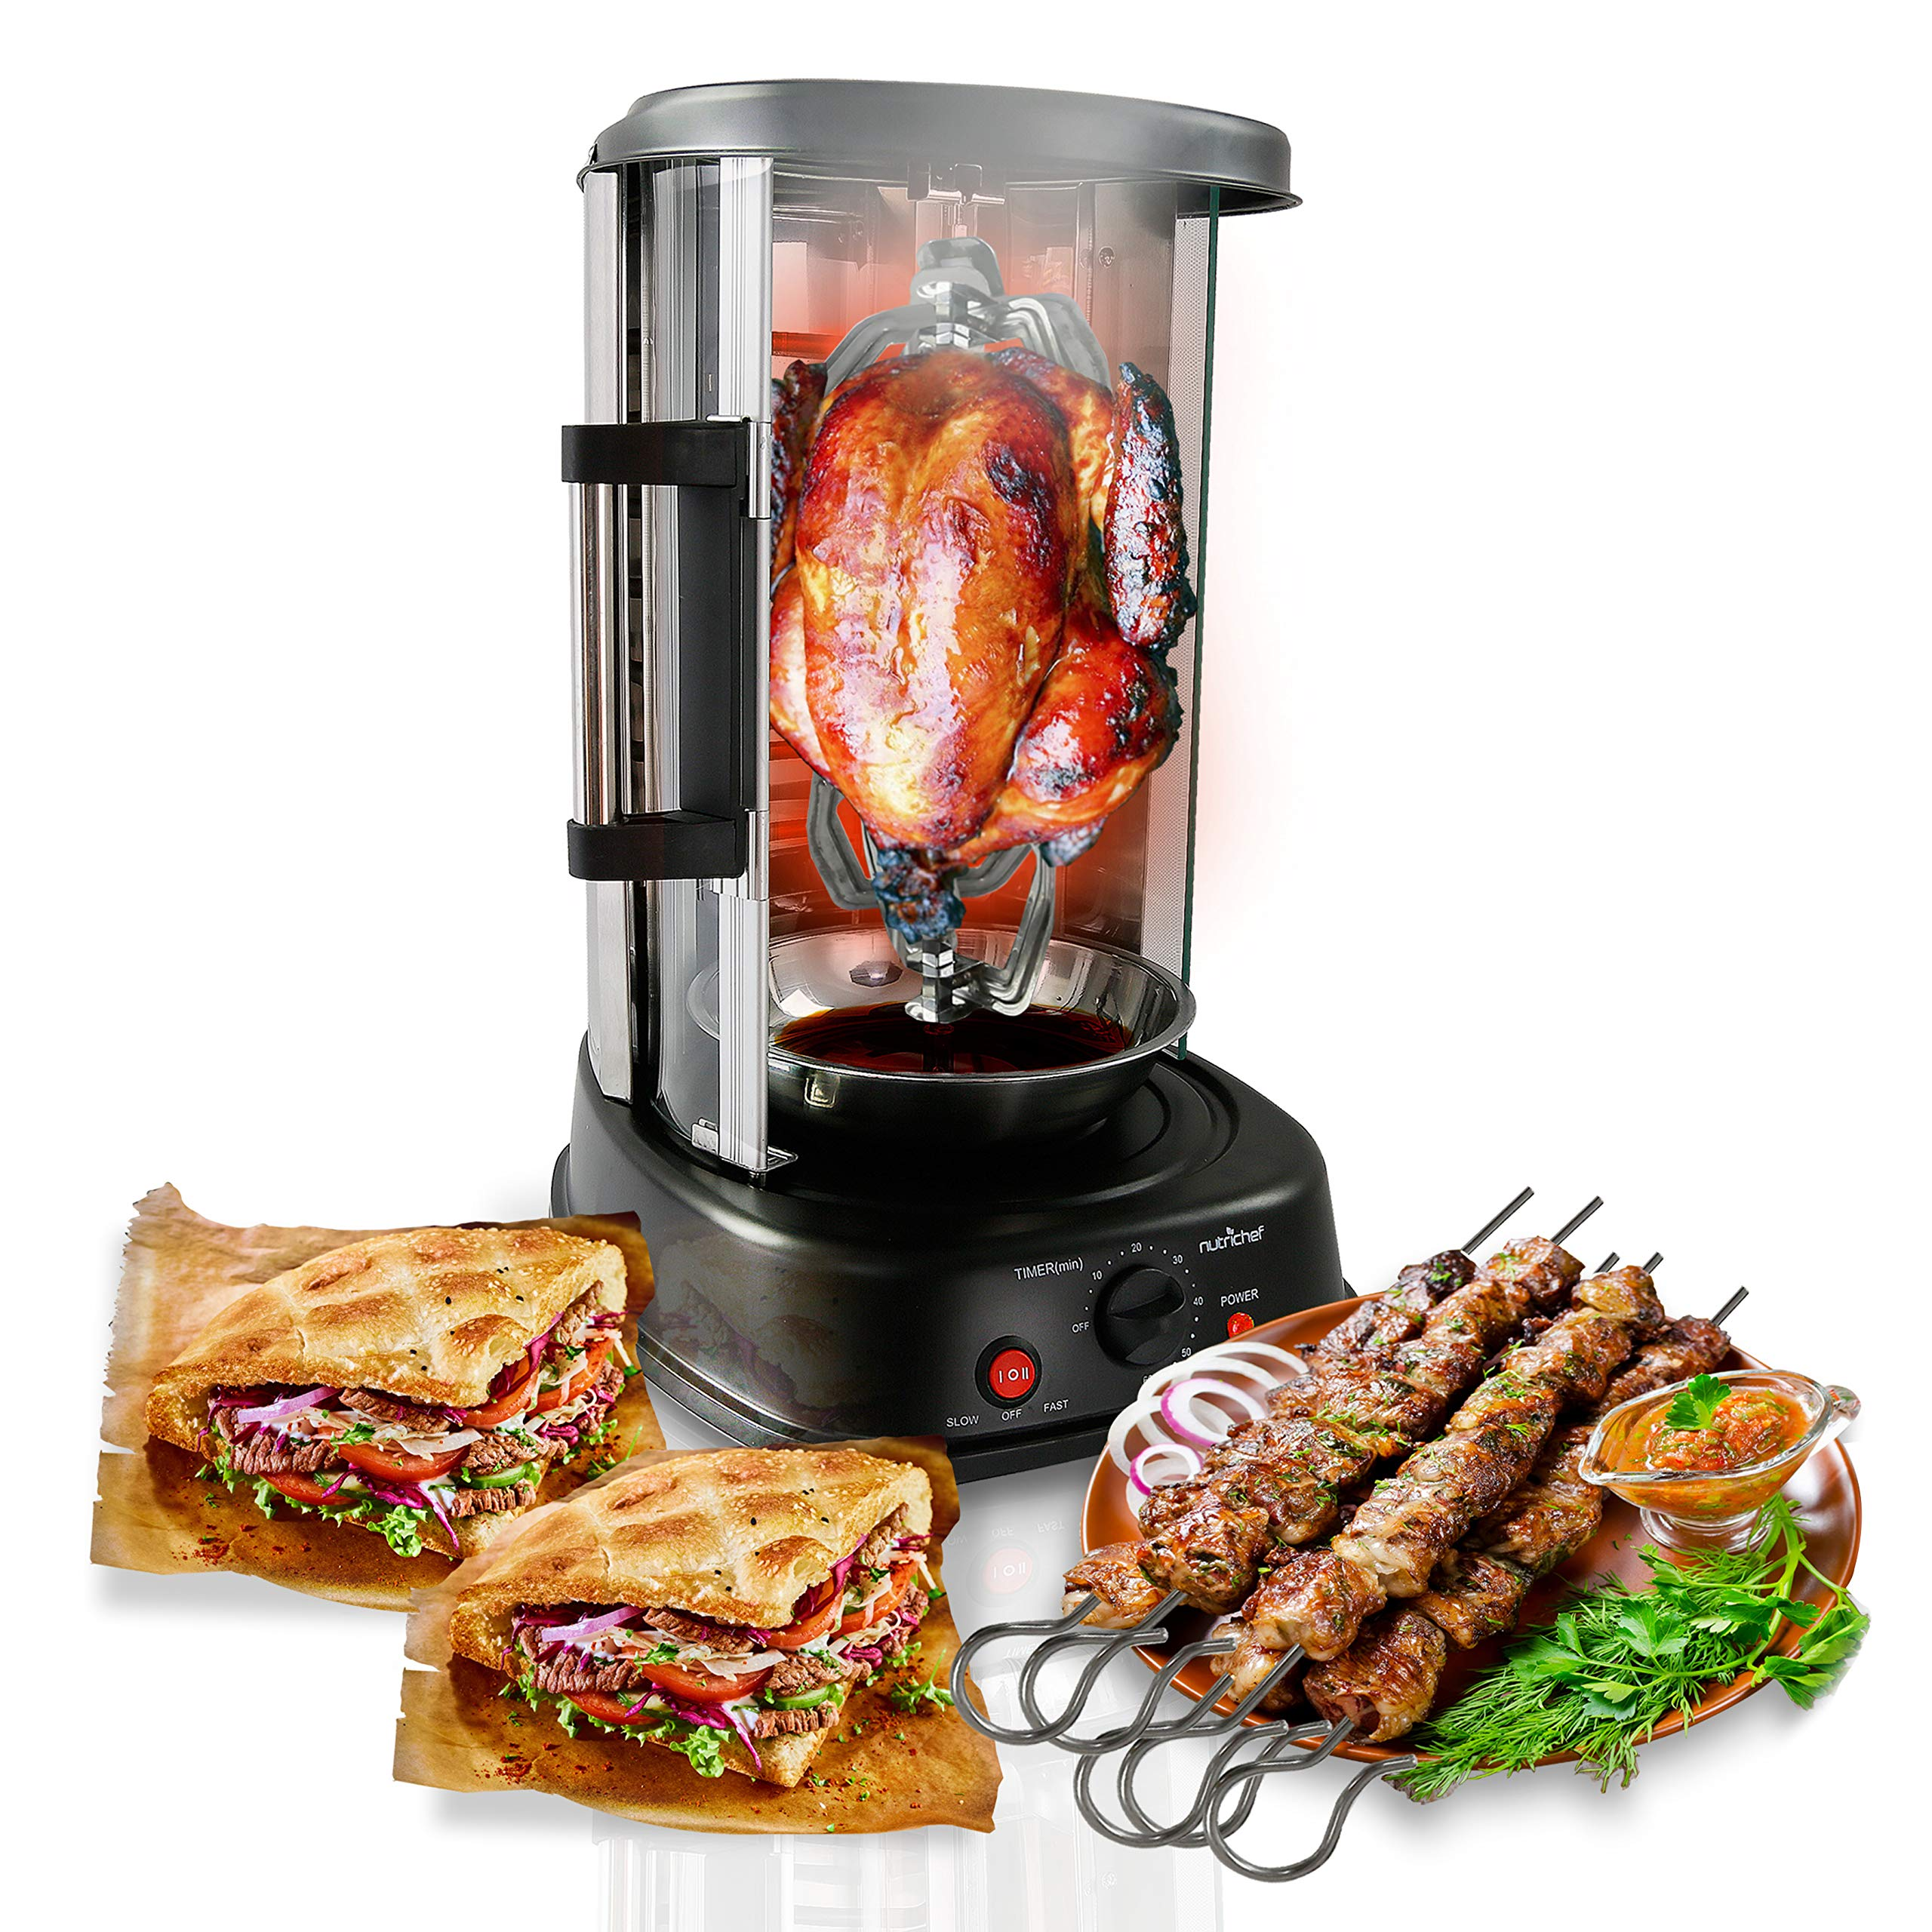 NutriChef Countertop Vertical Rotating Oven - Rotisserie Shawarma Machine, Kebob Machine, Stain Resistant & Energy Efficient W/ Heat Resistant Door,  Includes Kebob Rack with 7 Skewers (PKRTVG34) by Nutrichef